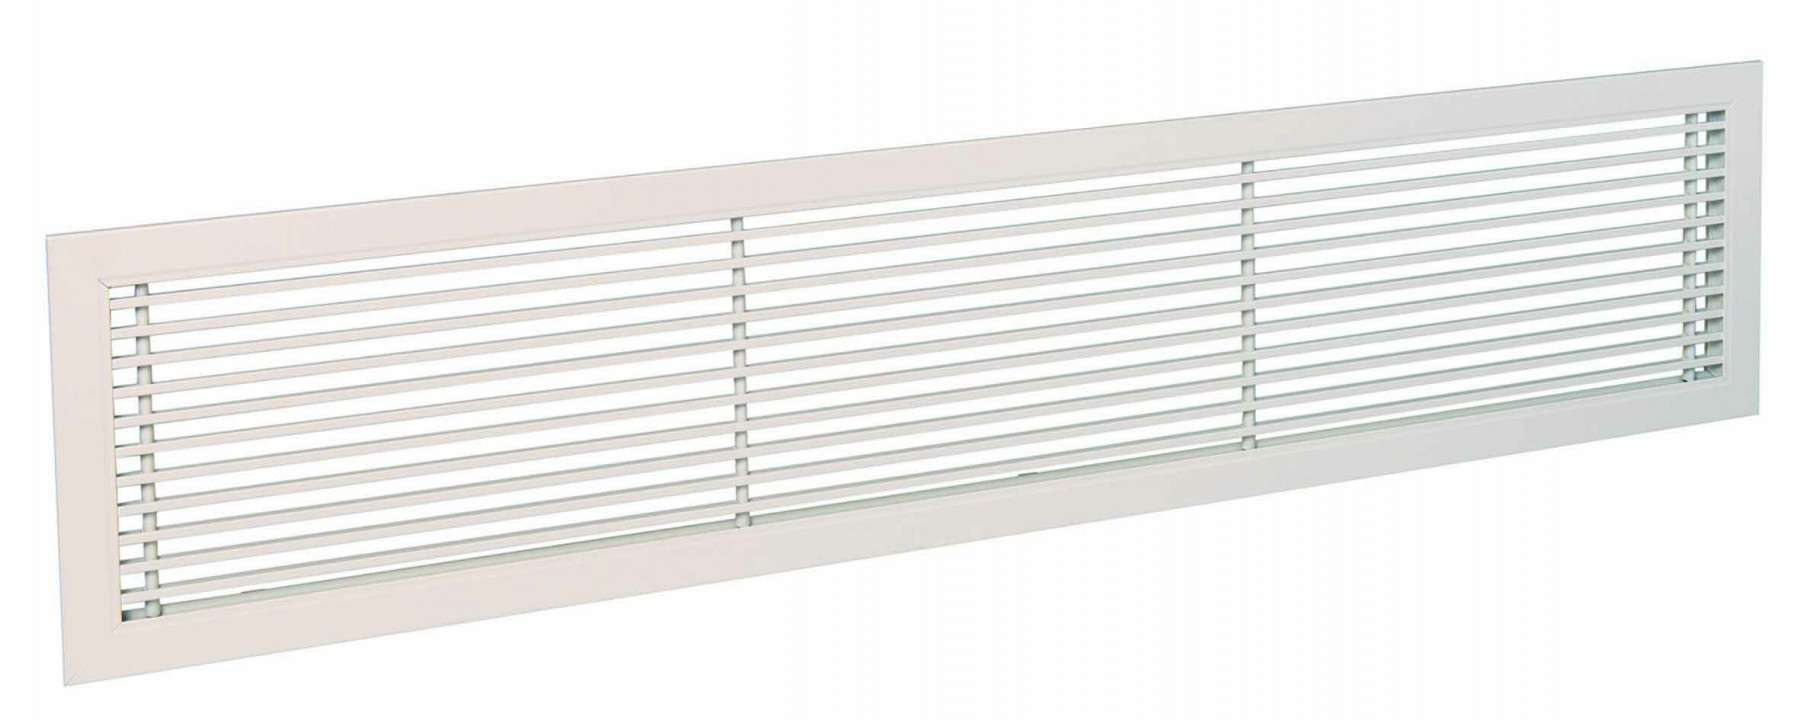 Grilles intérieures GRIDLINED WALL F3 1000X150 RAL9010 Aldes 11050573